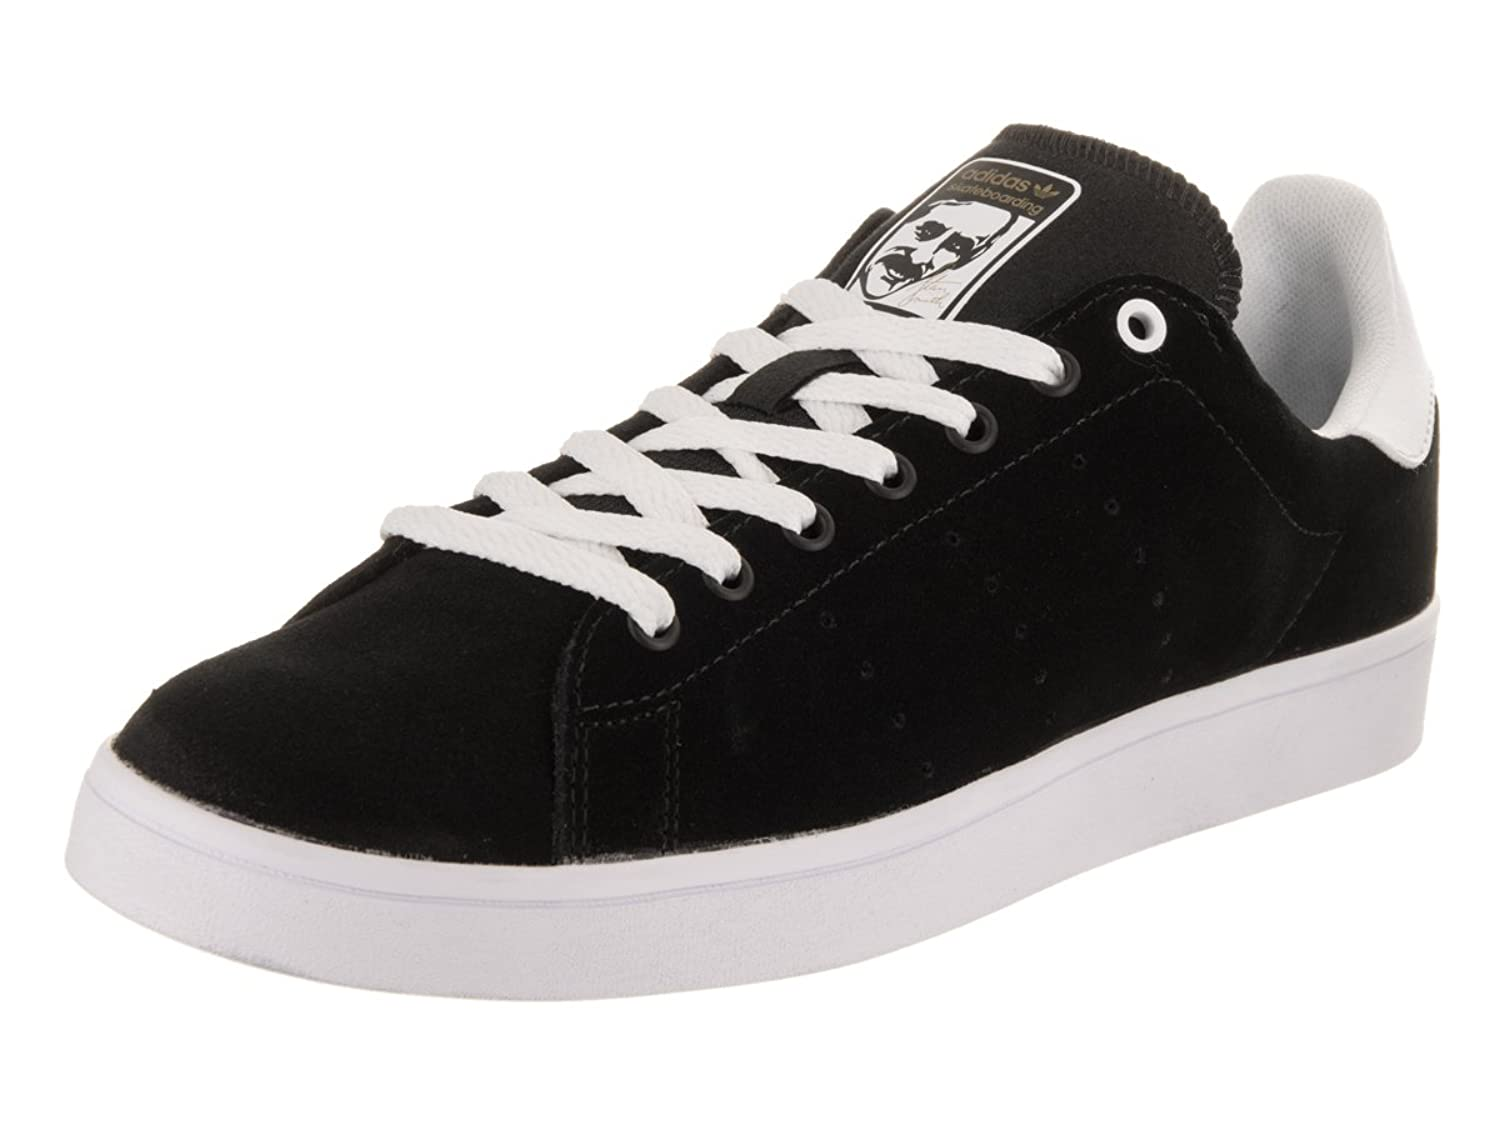 adidas shoes black and white low top. adidas originals men\u0027s stan smith vulc shoes black and white low top